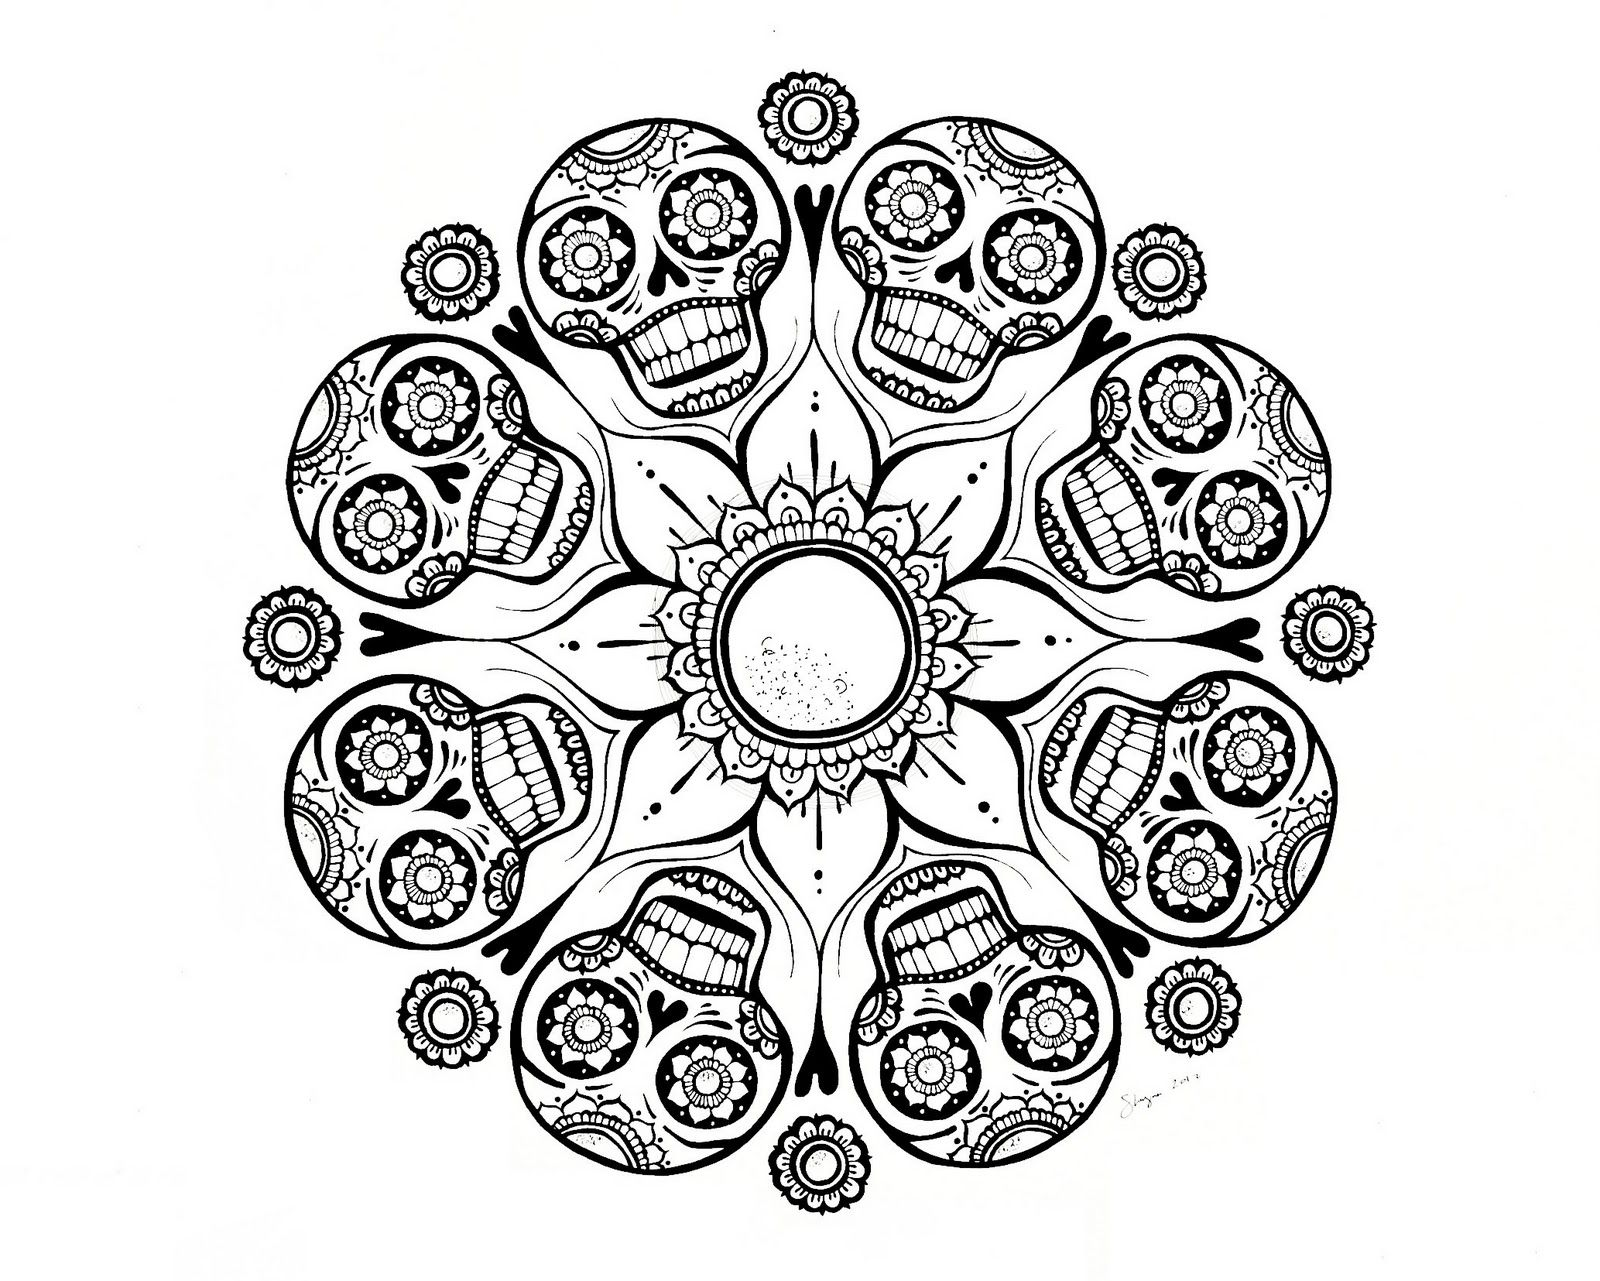 Skull Mandala Coloring Pages am selling PDF downloads in my Etsy